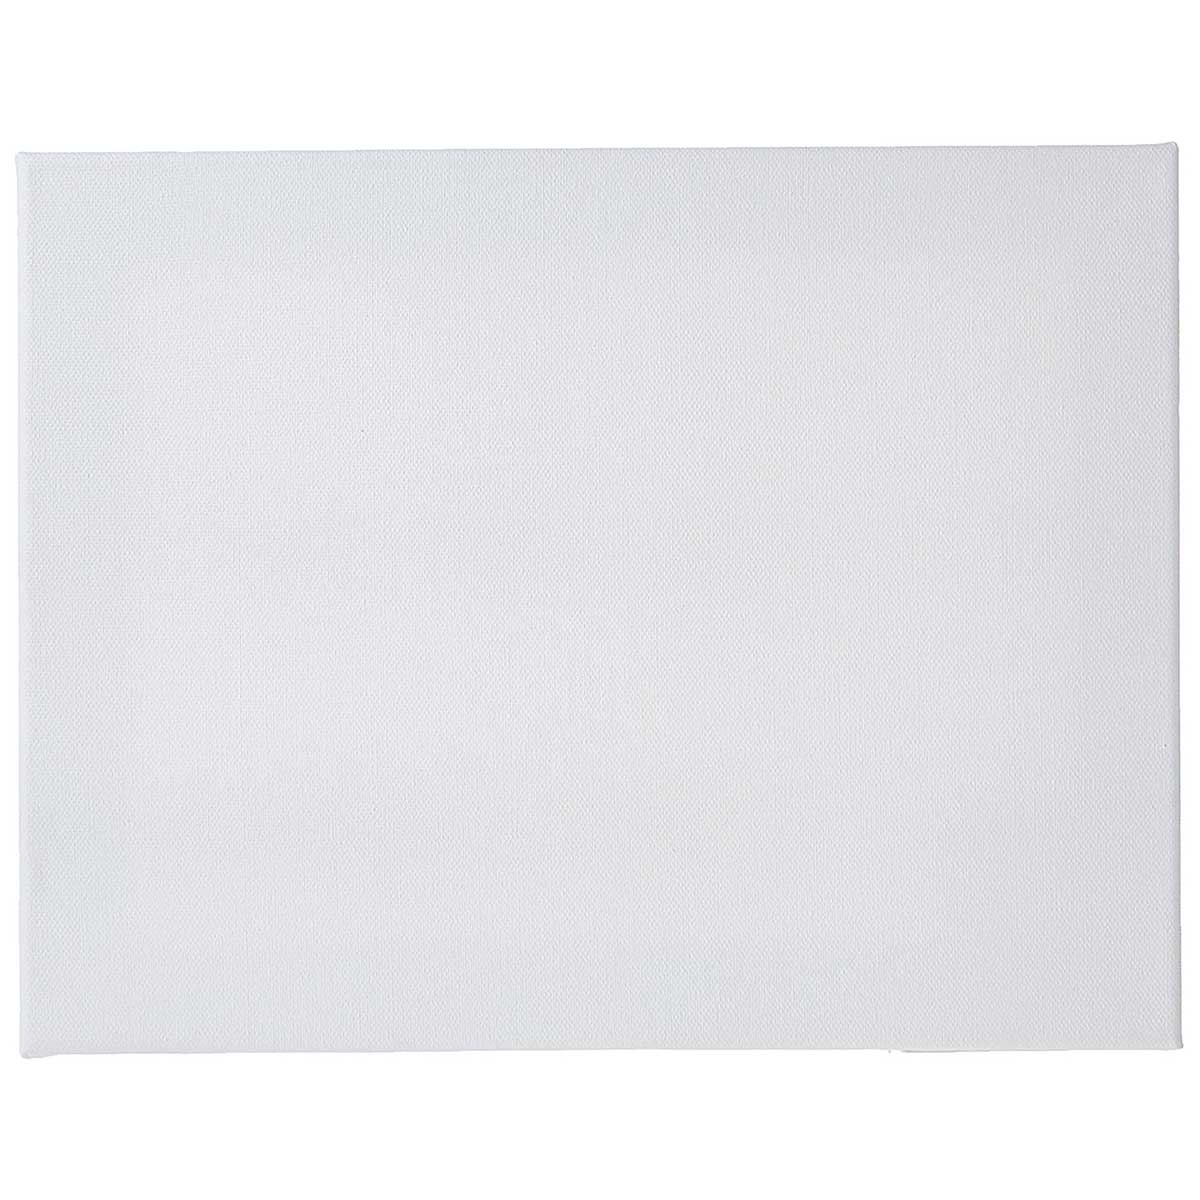 Stretched Canvas Board (16X20 Inch)